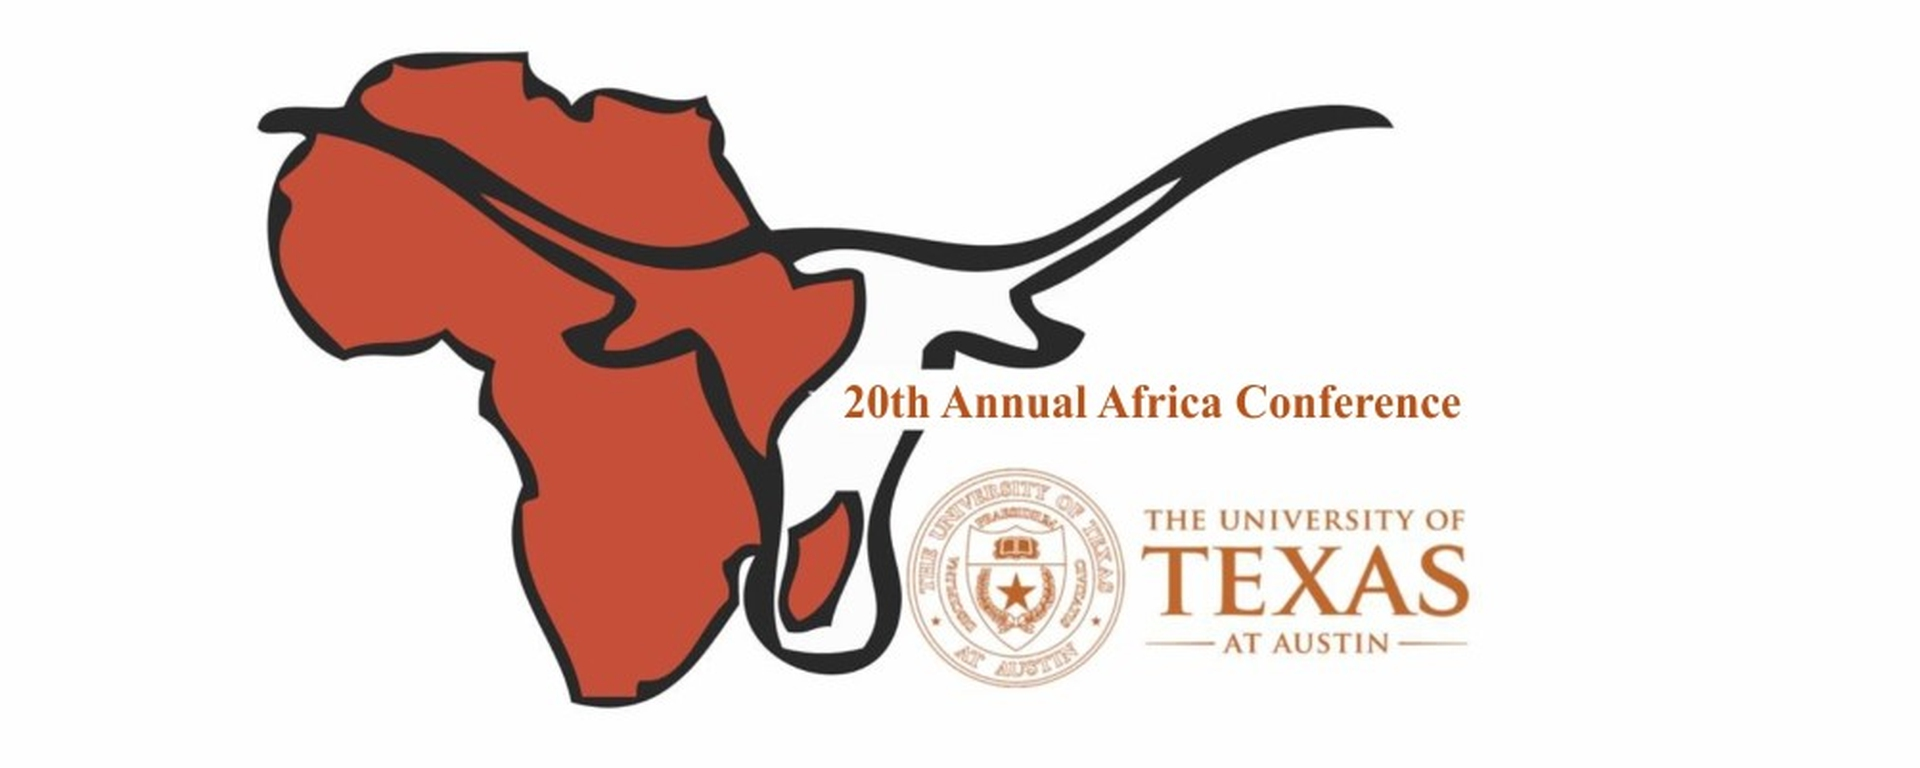 College of Liberal Arts-The University of Texas - 2020 Annual Africa Conference Movemeback African event cover image